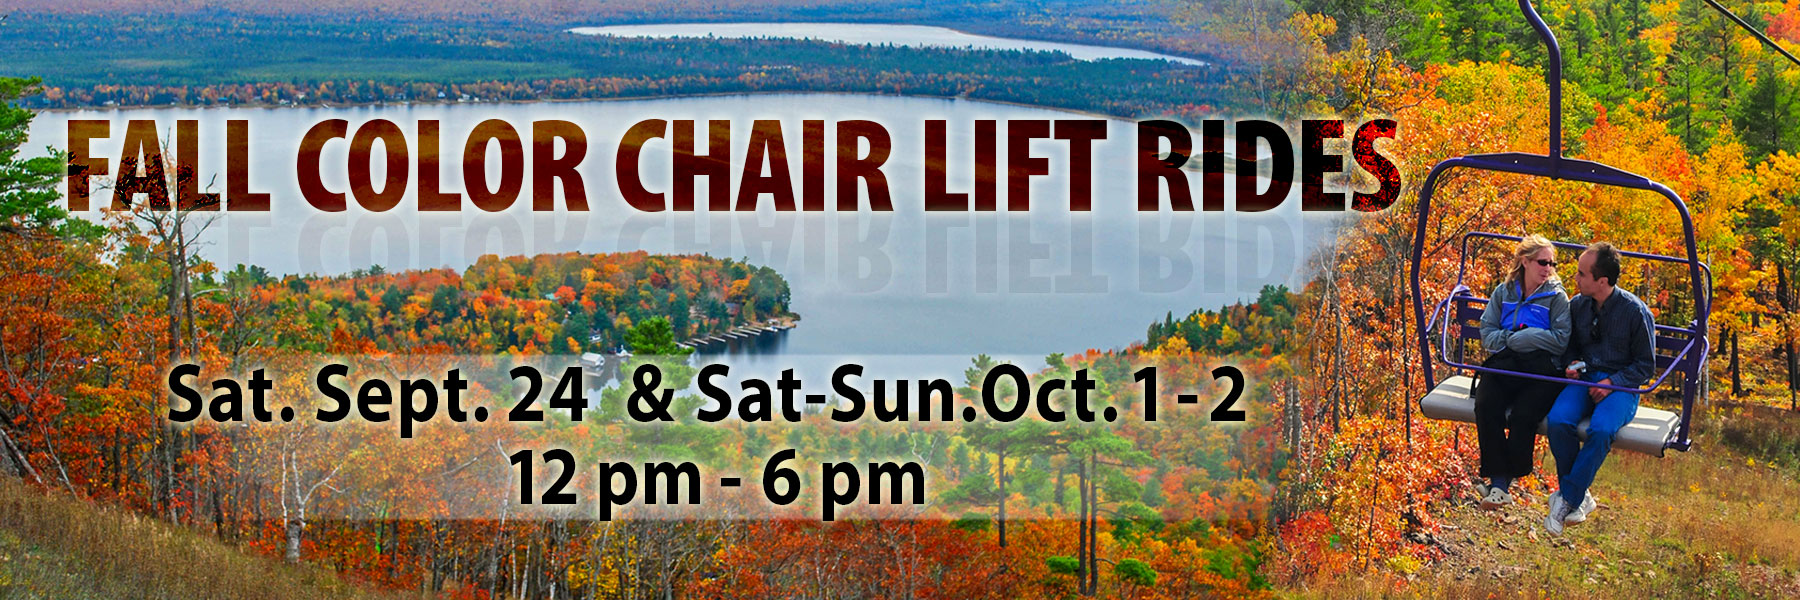 fall color chair lift rides